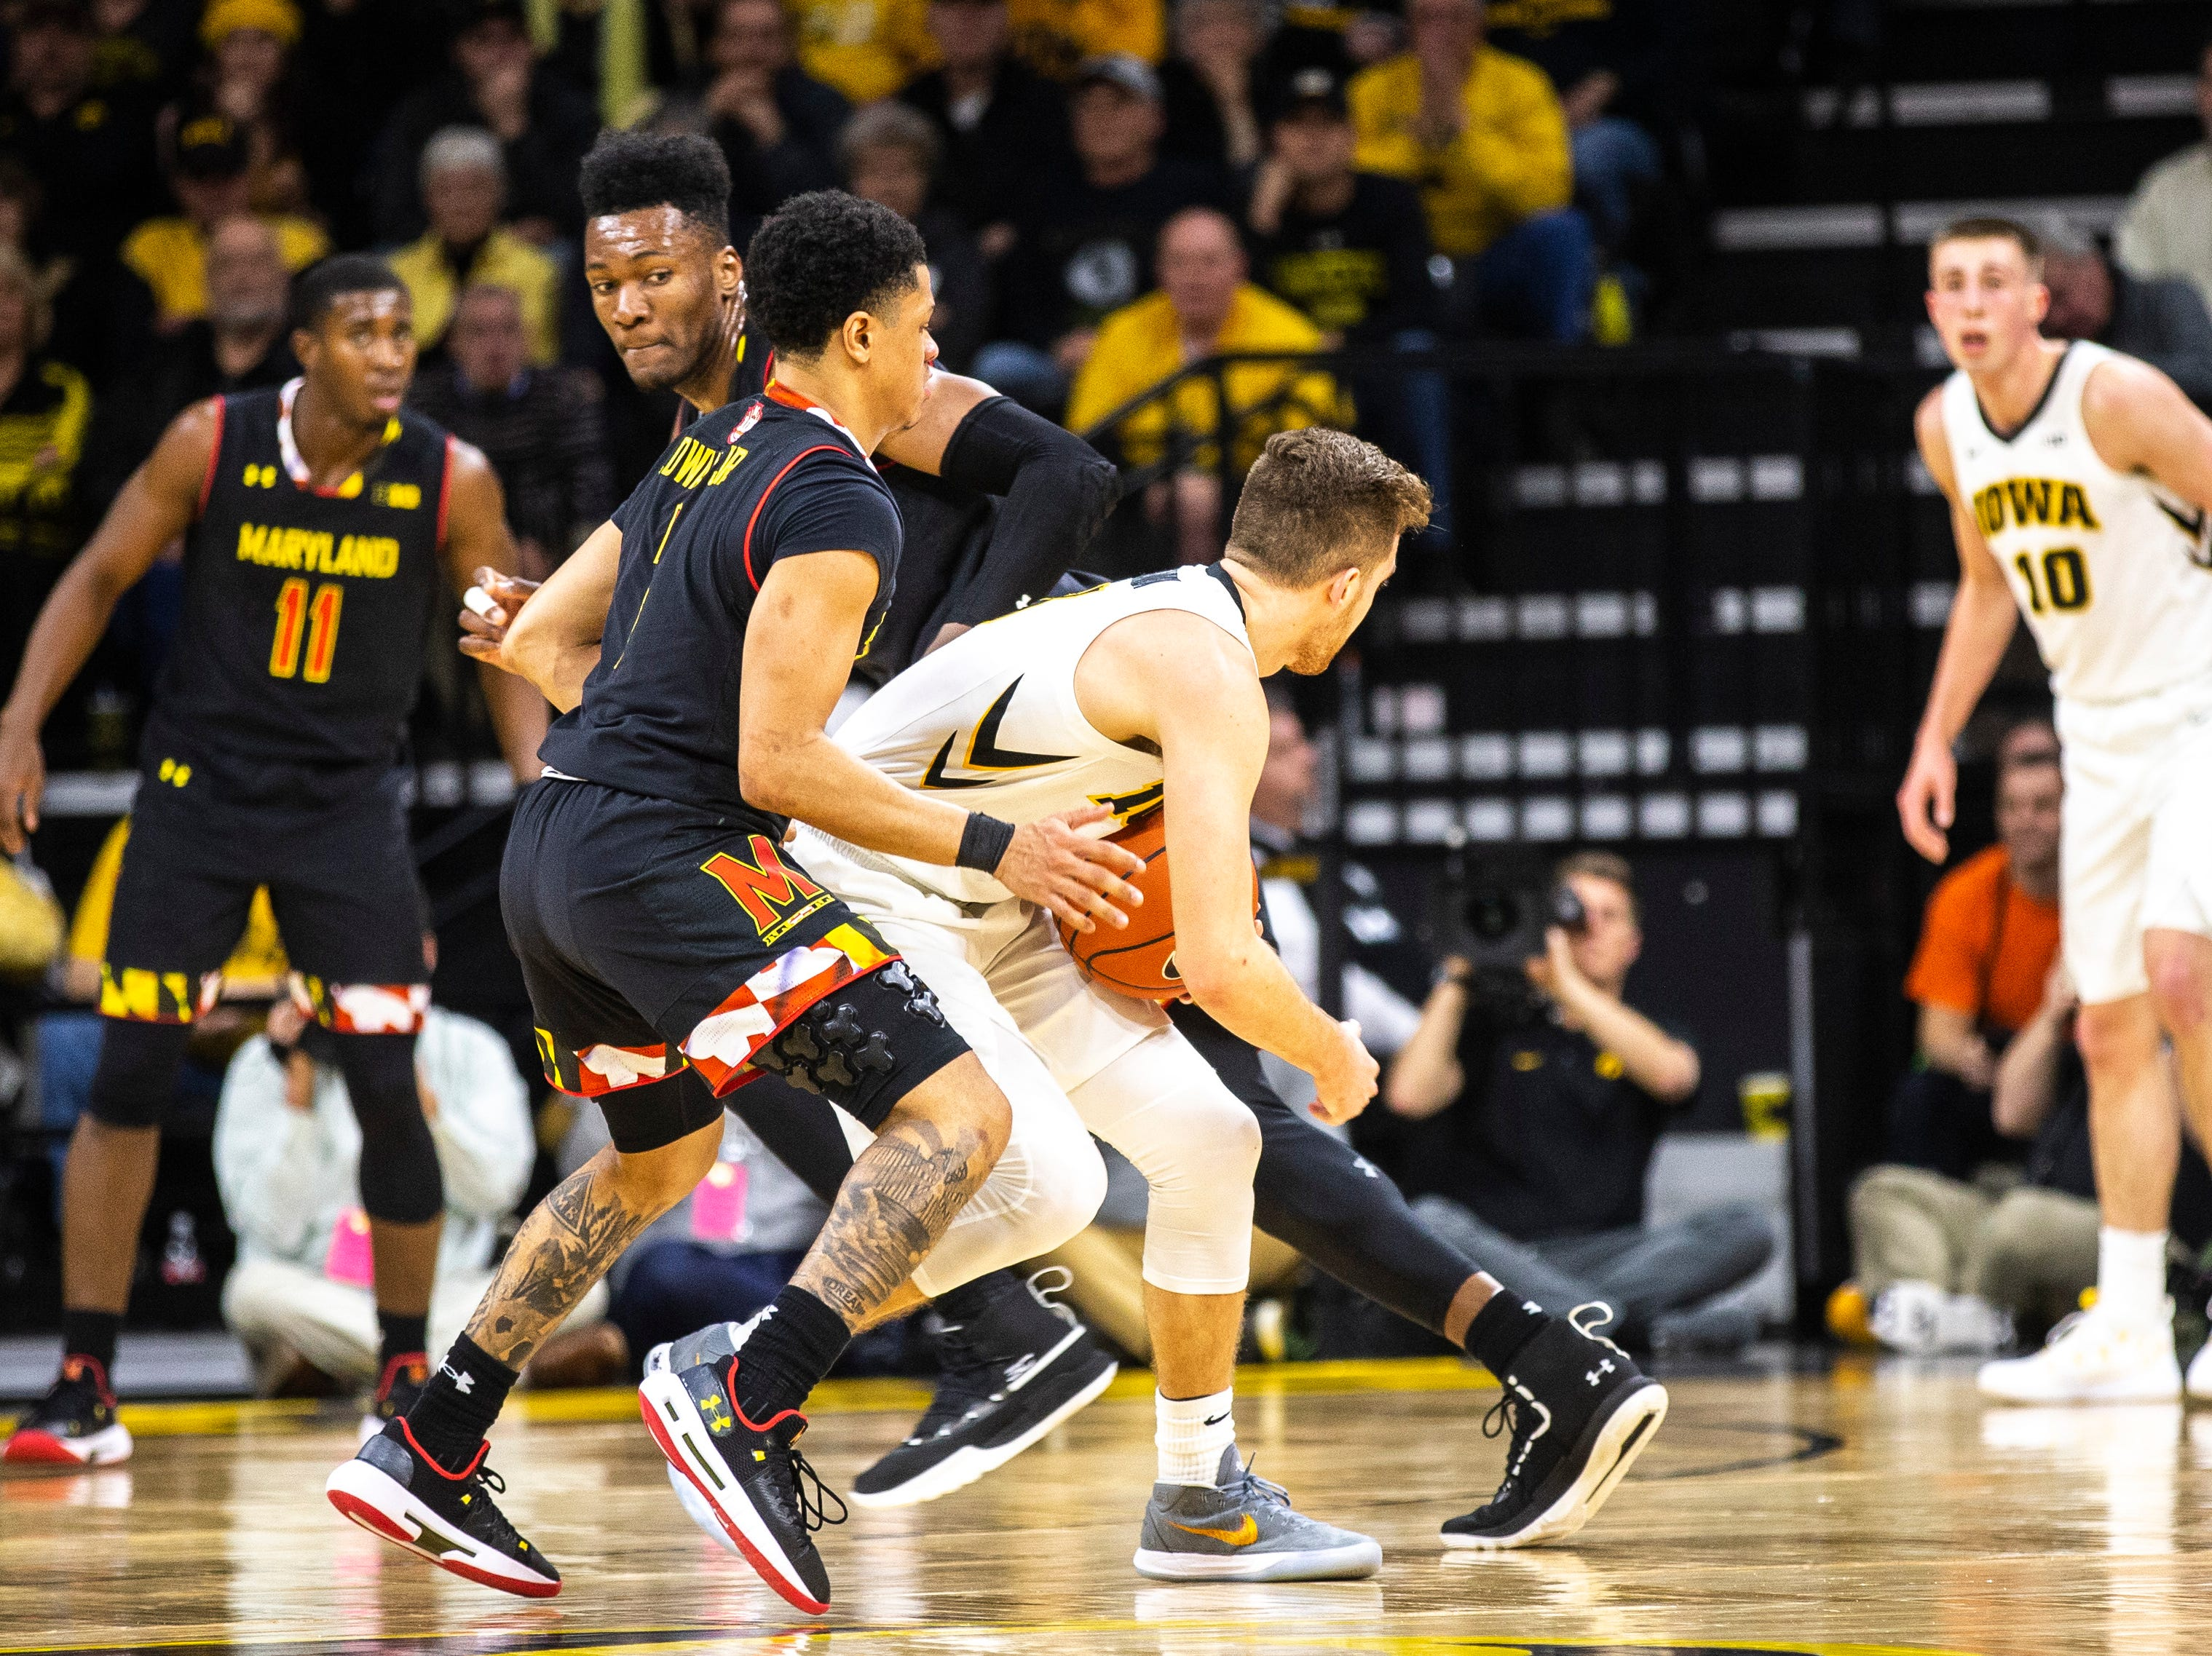 Iowa guard Jordan Bohannon (3) draws contact from Maryland guard Anthony Cowan Jr. (1) during a NCAA Big Ten Conference men's basketball game on Tuesday, Feb. 19, 2019 at Carver-Hawkeye Arena in Iowa City, Iowa.